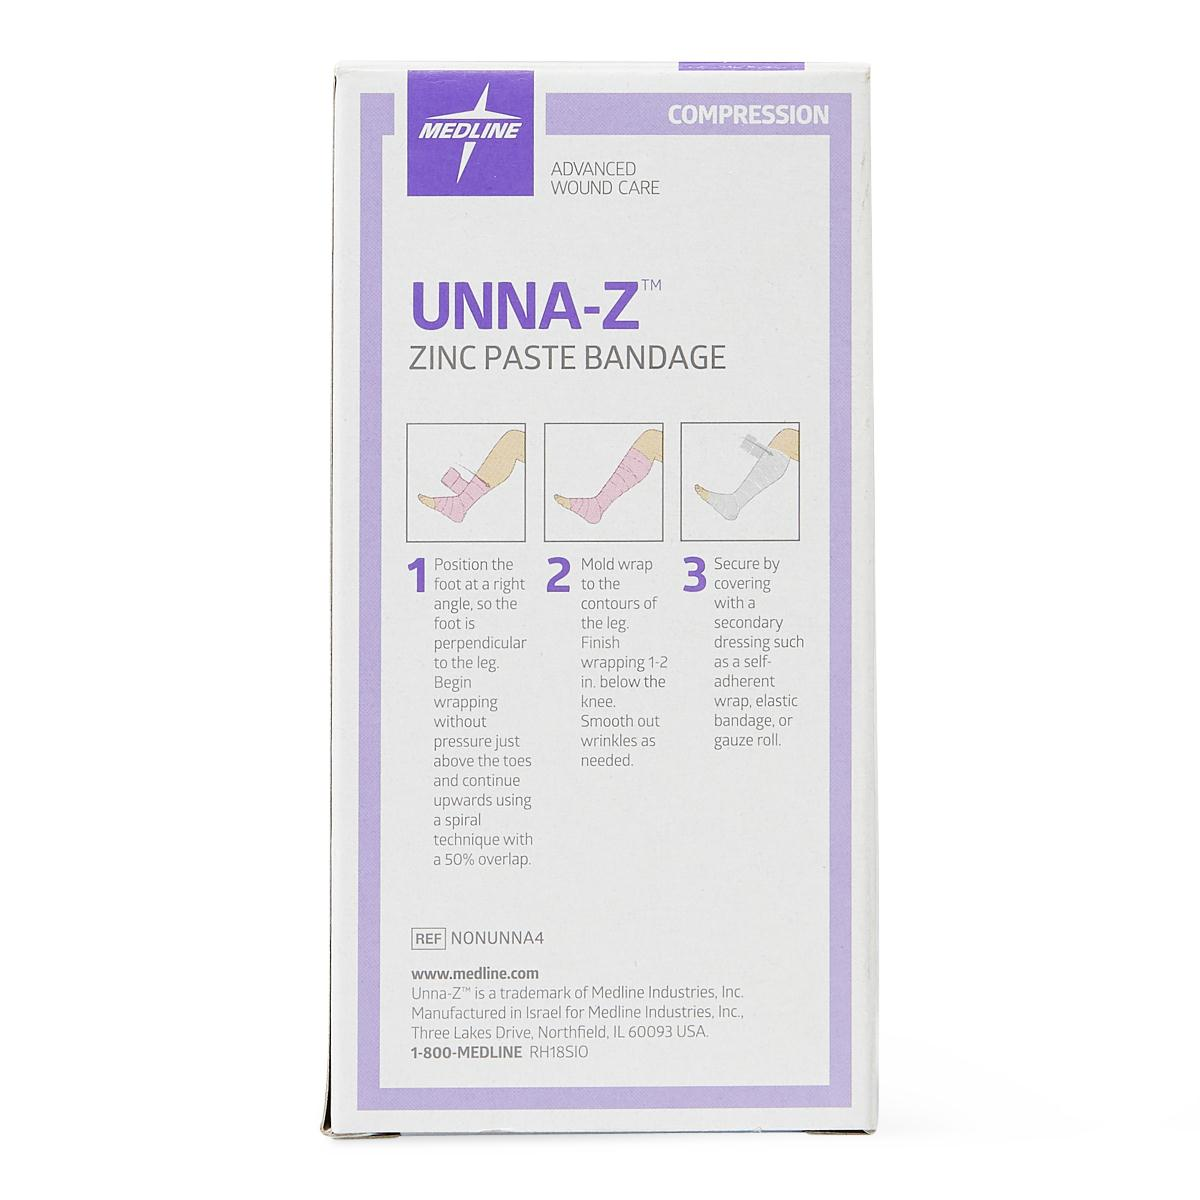 "Unna-Z Boot Compression Wrap with Zinc & Calamine 4"" x 10yd - NONUNNA4"